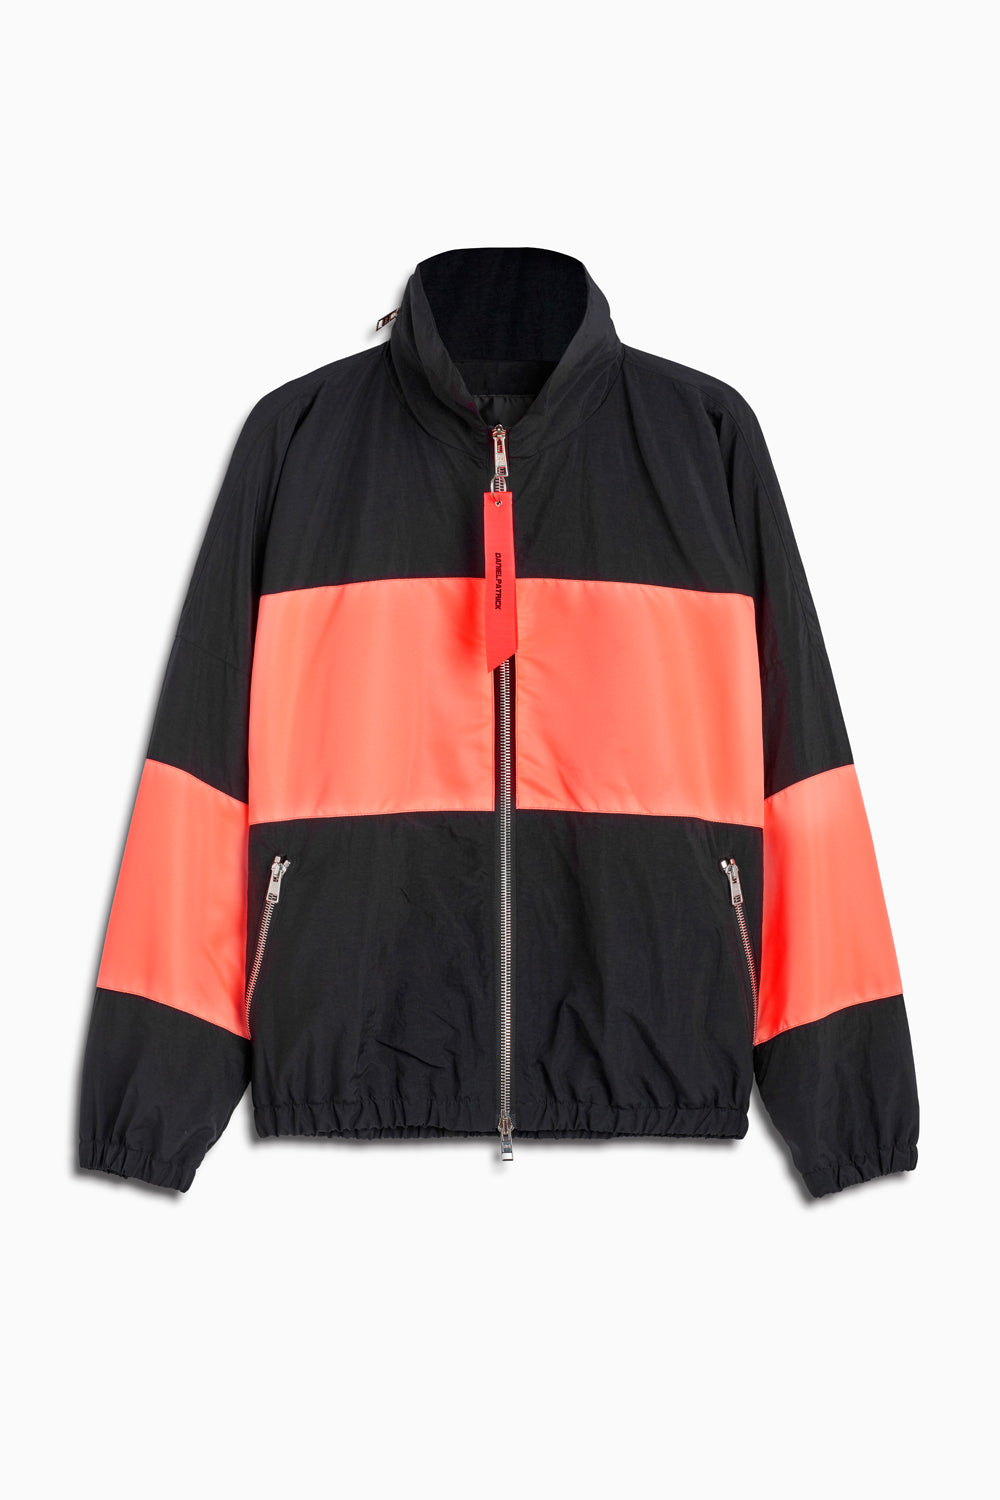 panel track jacket in black/coral by daniel patrick